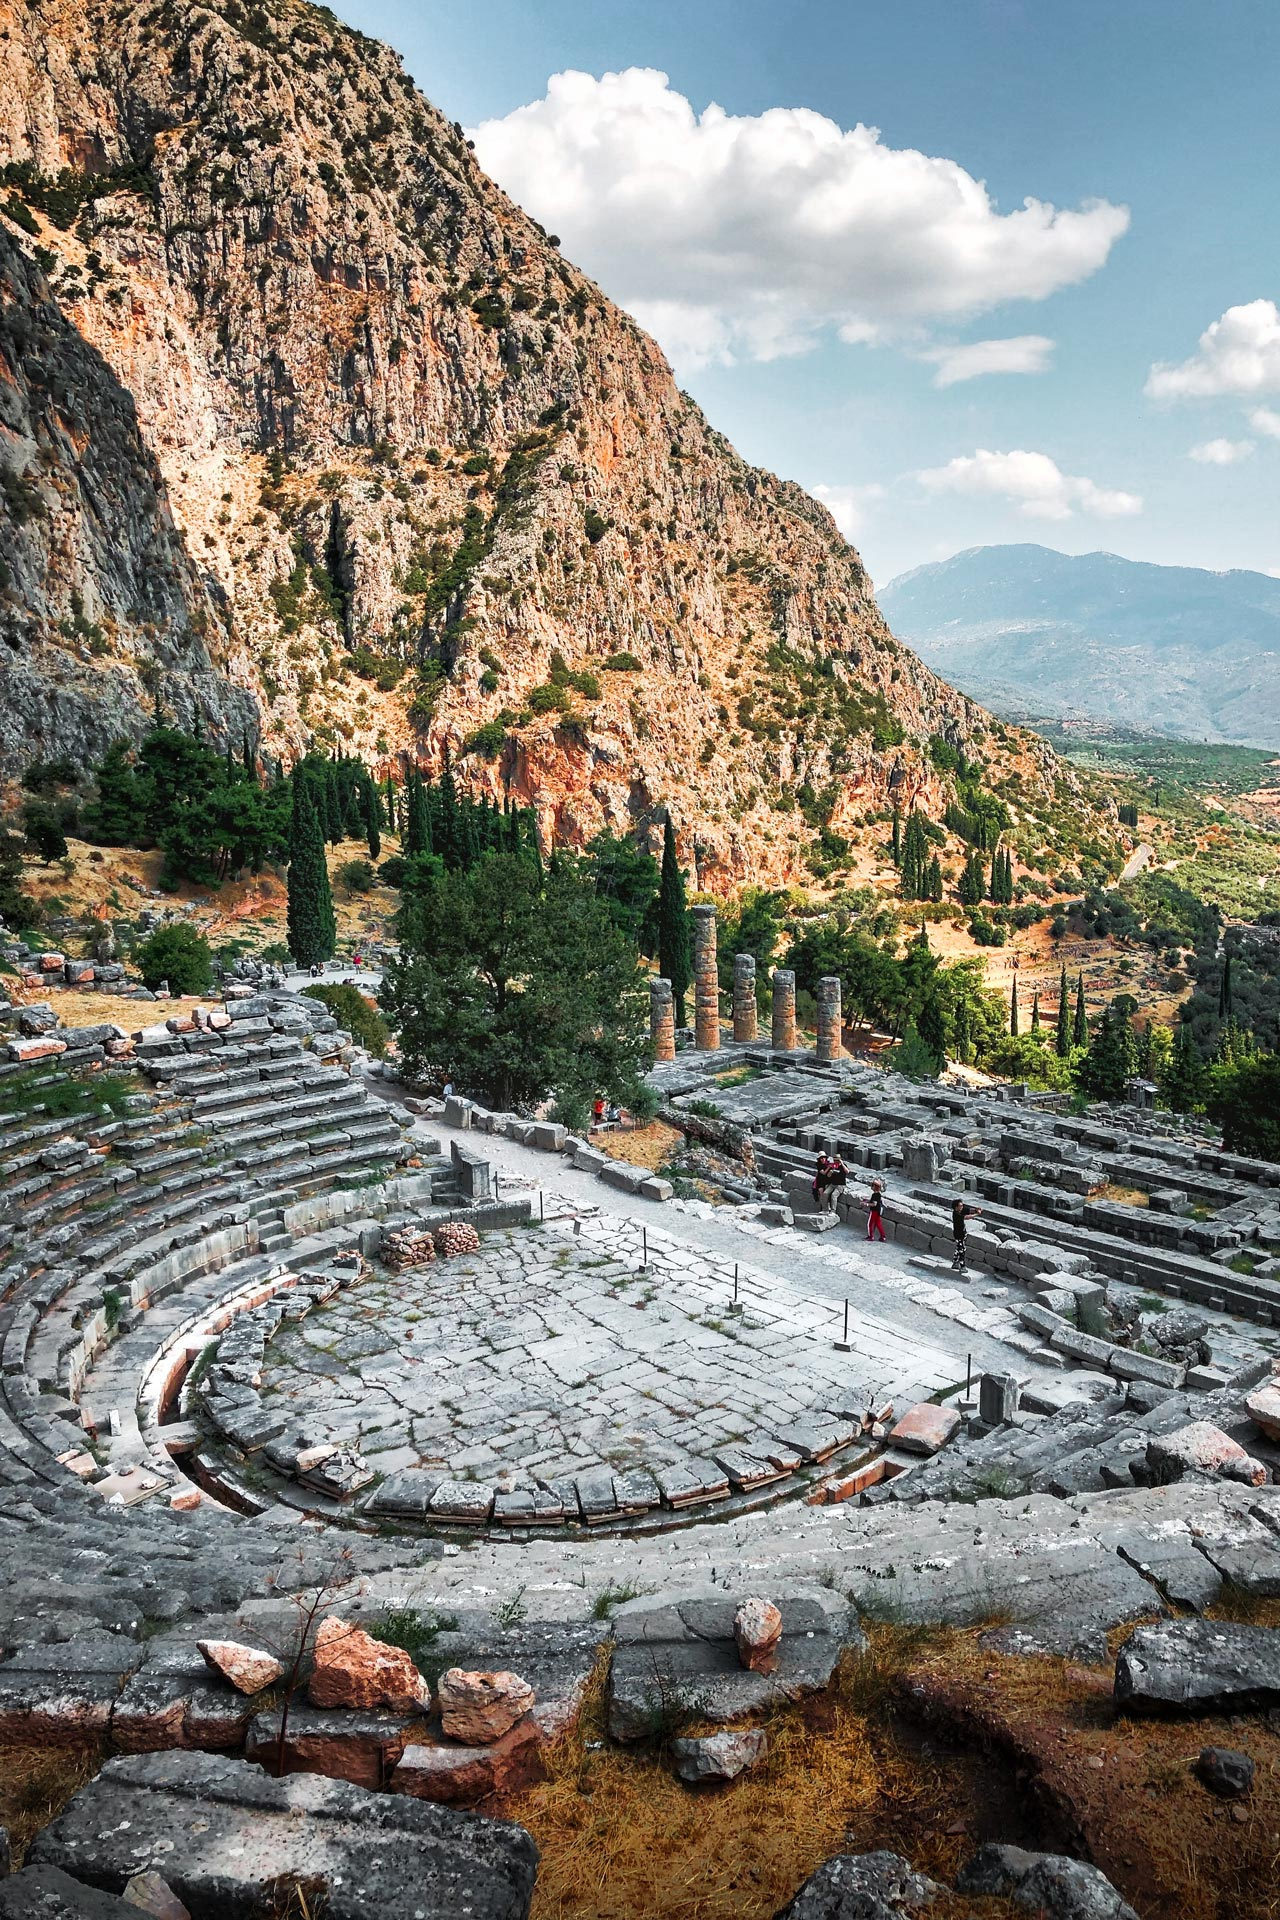 Originally built in the 4th century BC, Delphi's theatre was the artistic home of the sanctuary